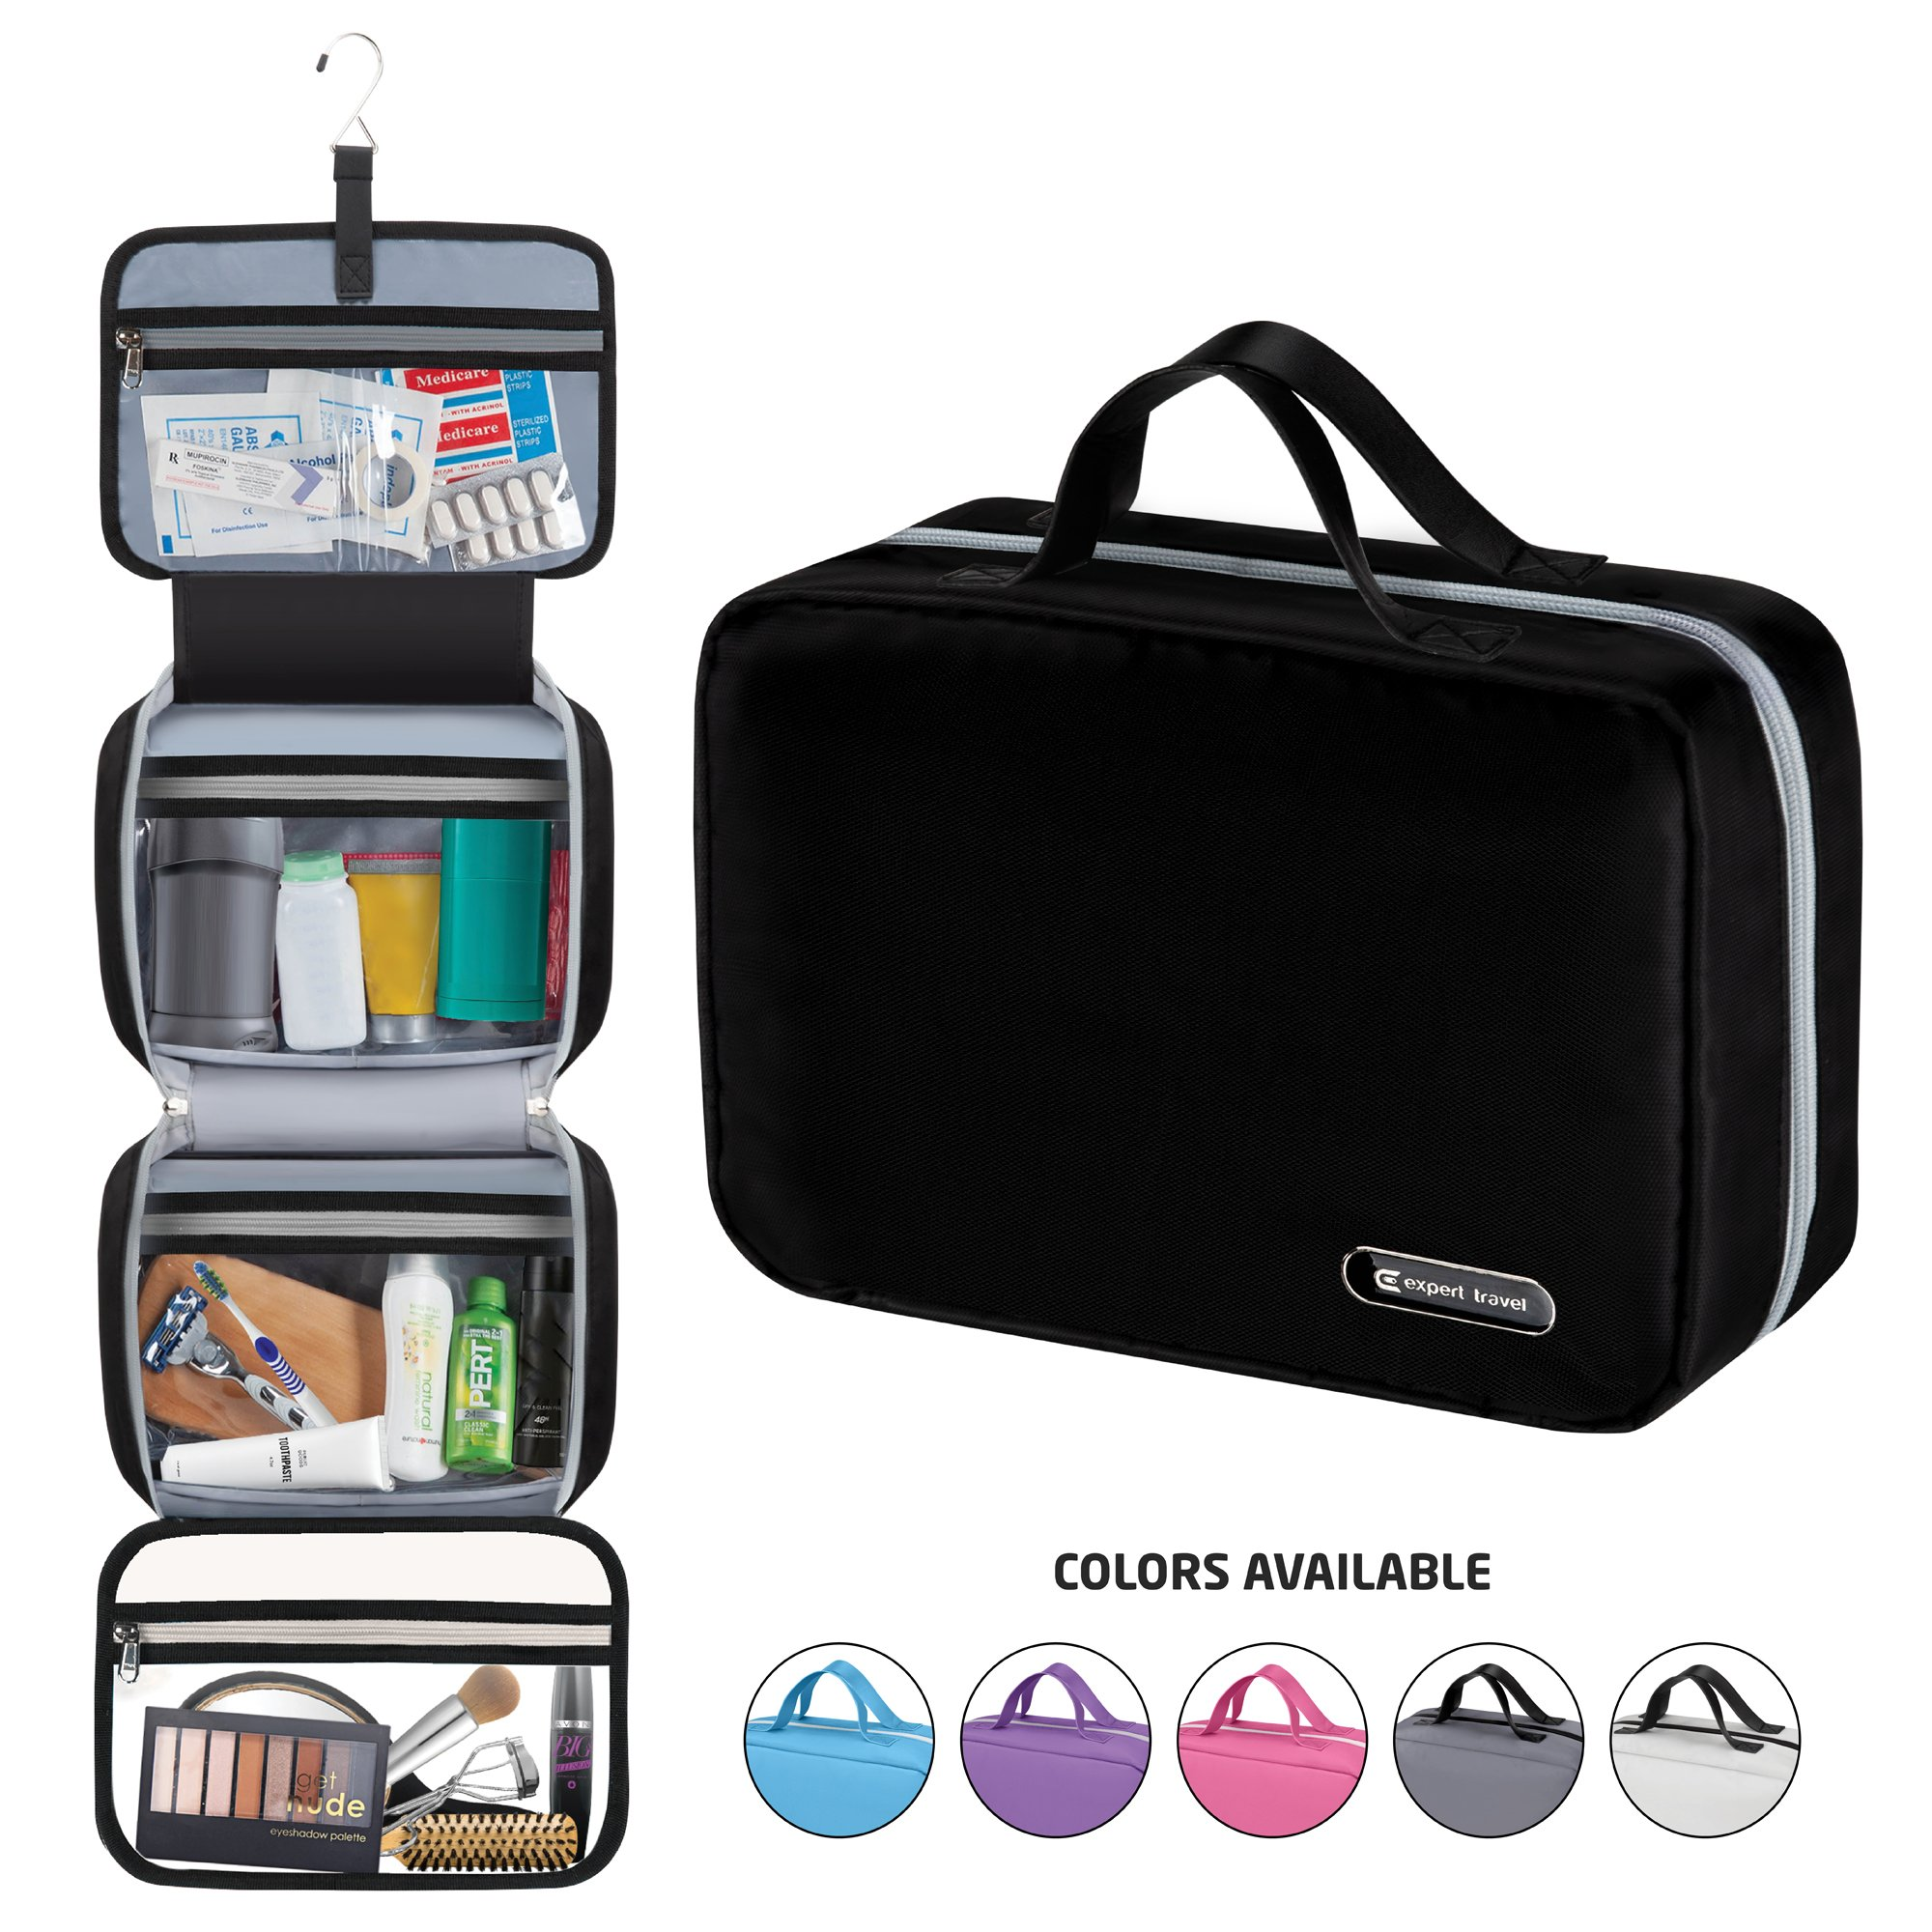 Hanging Travel Toiletry Bag for Men and Women | Makeup Bag | Cosmetic Bag | Bathroom and Shower Organizer Kit | Leak Proof | 2 Sizes - Large (34''x11'') & XL Family Size (42''x13'') by Expert Travel